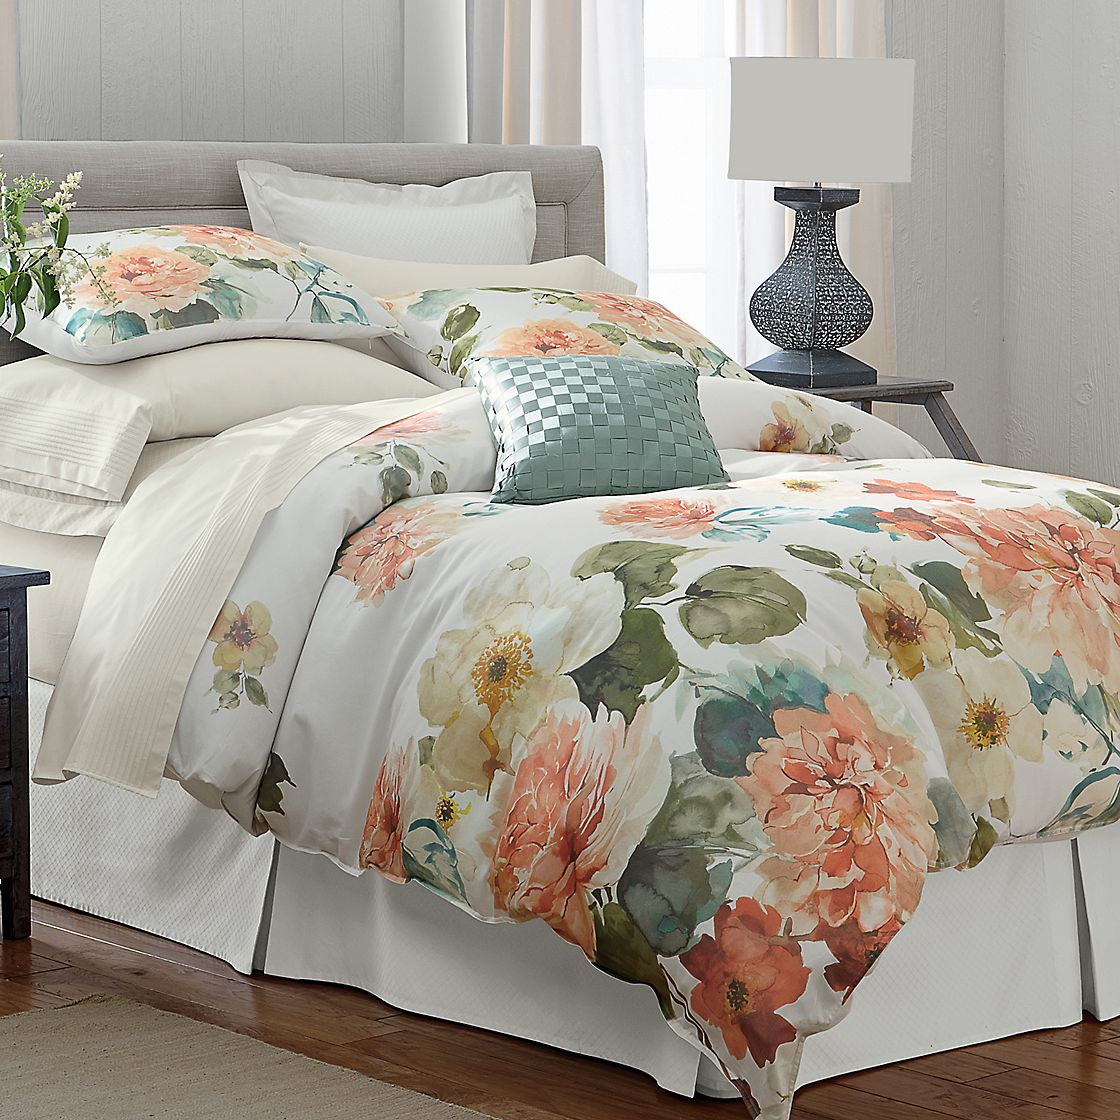 Duvet Covers: Free Shipping on orders over $45! Find a duvet to create a new style for your room from getson.ga Your Online Fashion Bedding Store! Get 5% in rewards with Club O! Shop all Duvet Covers On Sale. Shop by Size. Duvet Covers Queen. Duvet Covers King. Twin Duvet Covers.